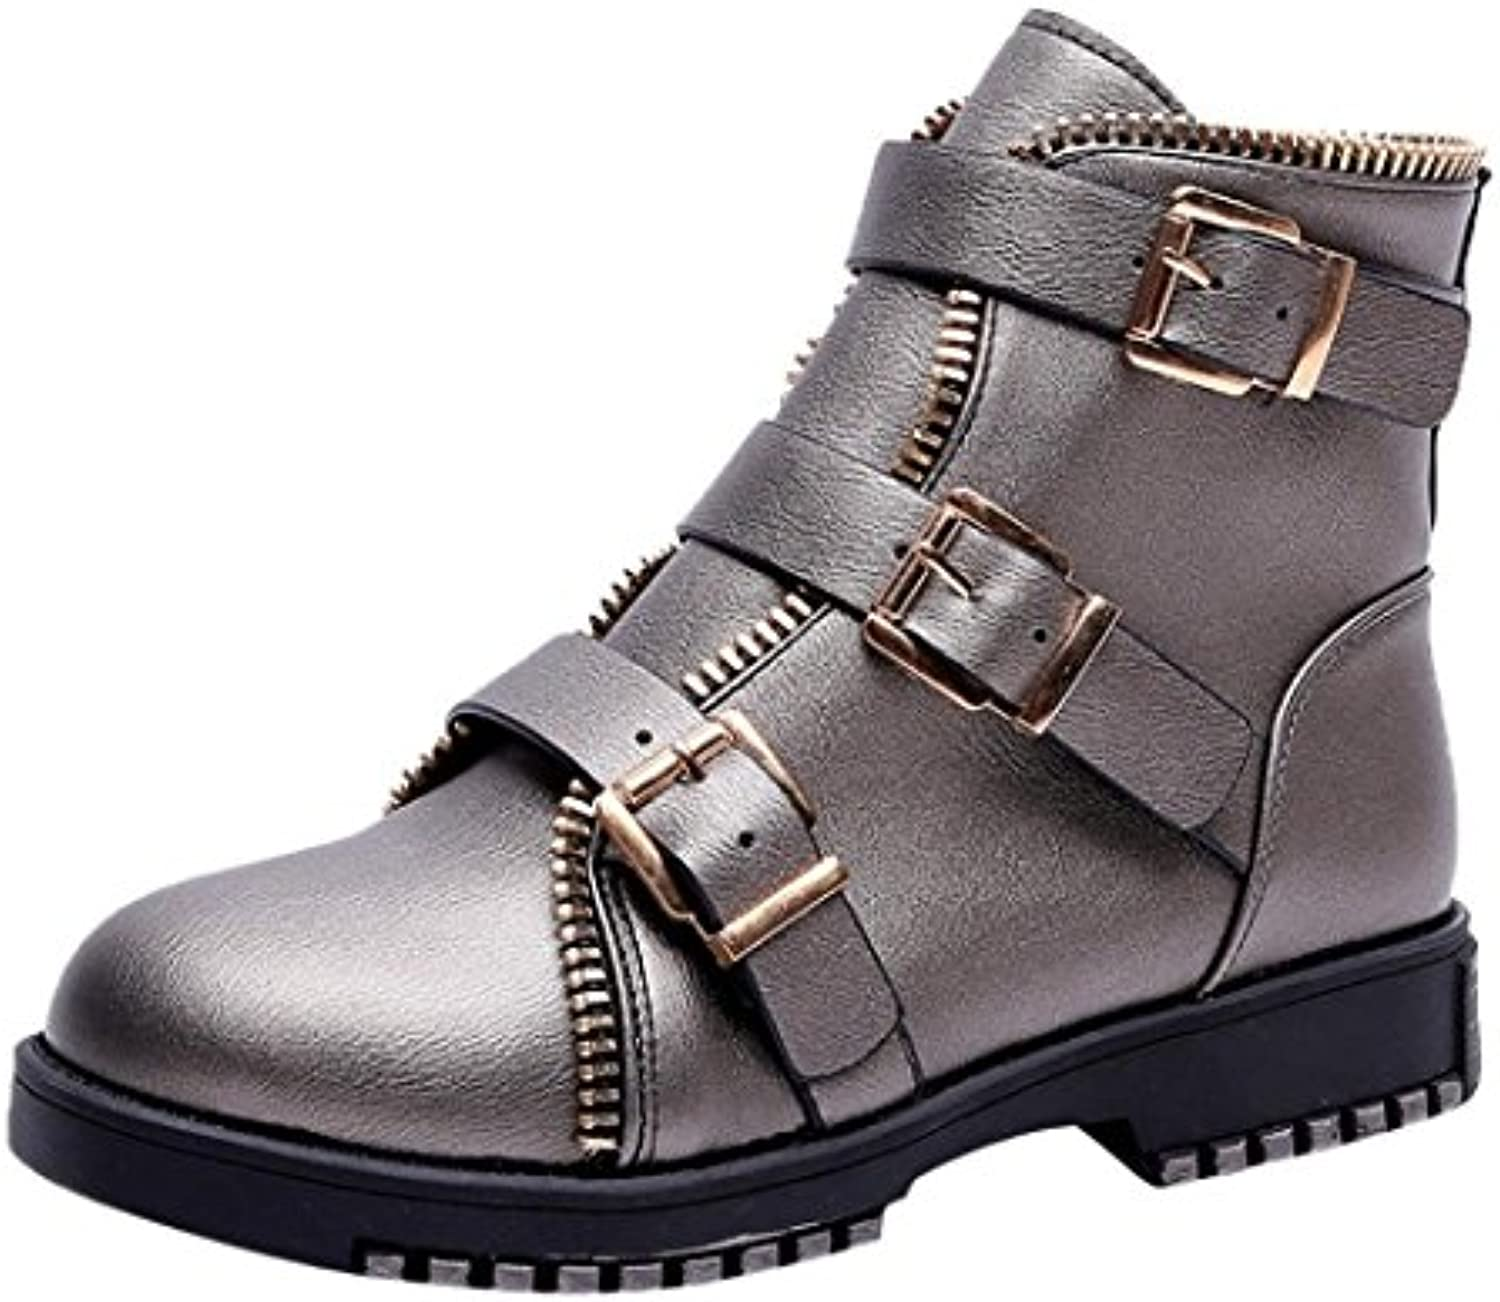 Bottes Femme,Beauty Top Femmes Vintage Round Toe Casual Flat Buckle Strap Casual Toe Cuir Martin Chaussures Automne Cheville...B07G34B71HParent 0da1cf